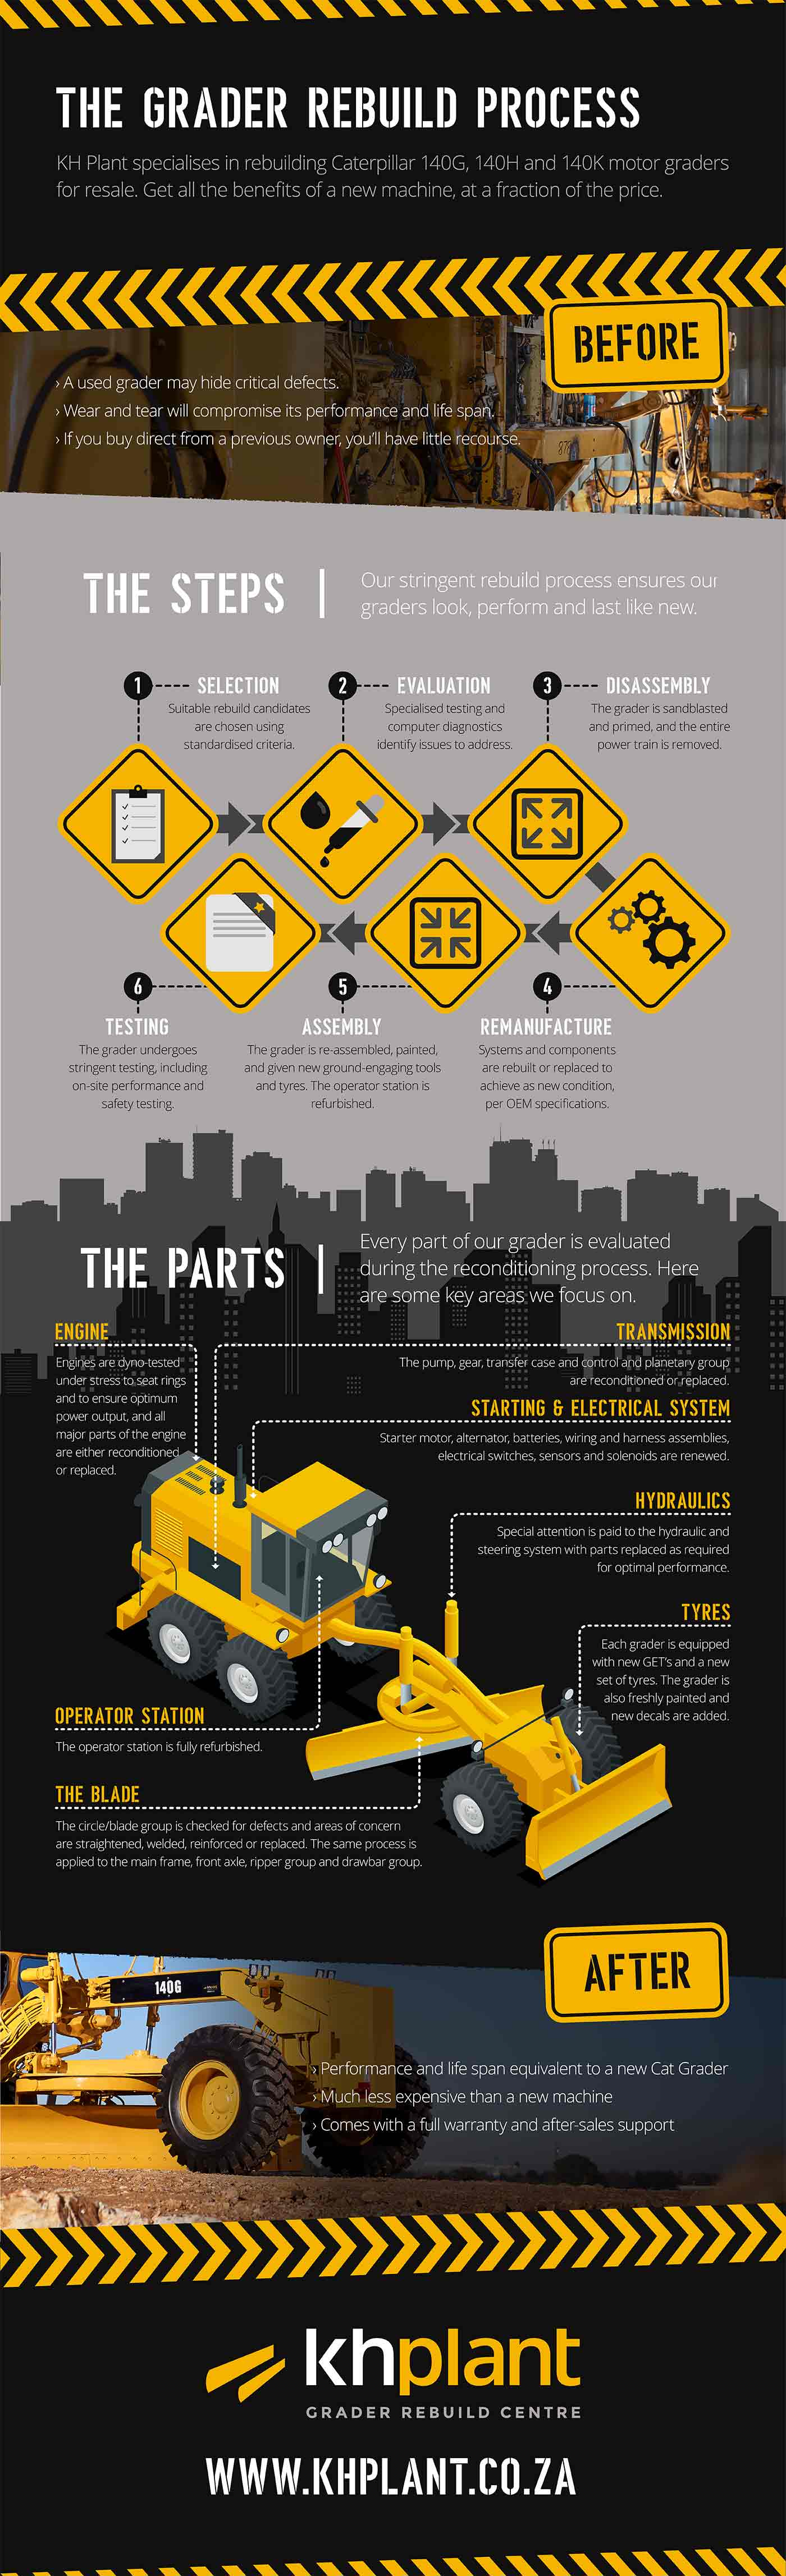 An infographic depicting the KH Plant motor grader rebuild process.